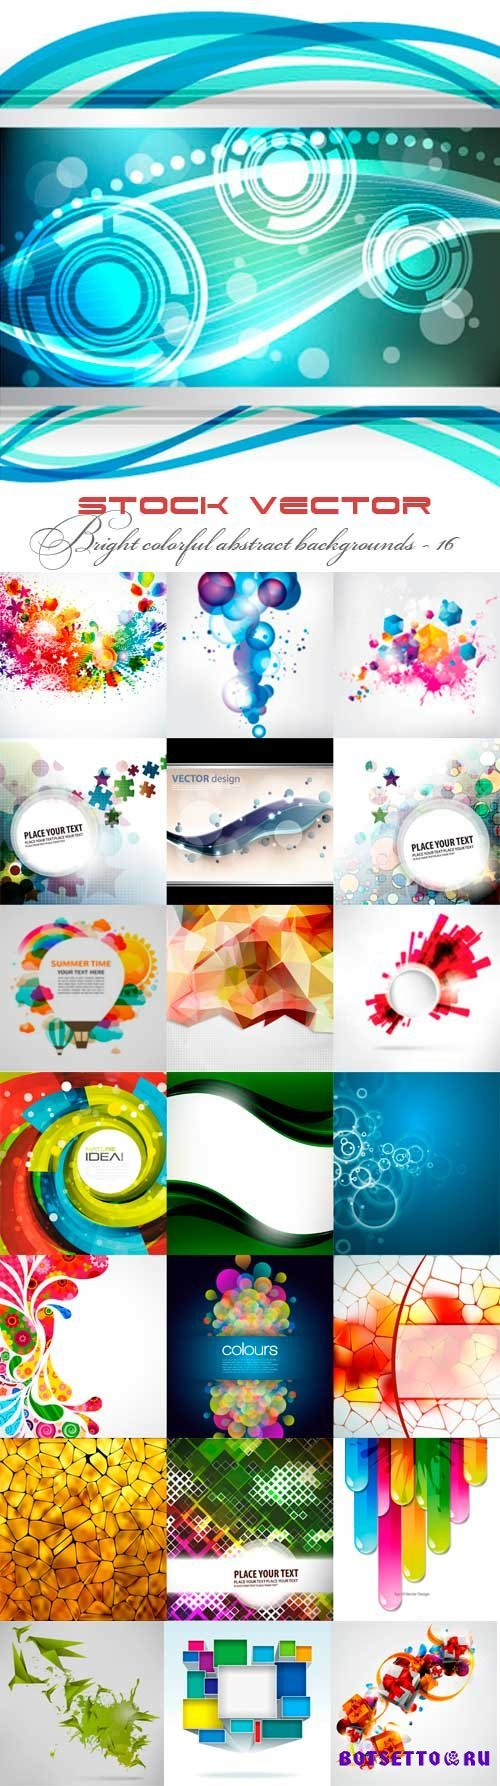 Bright colorful abstract backgrounds vector - 16